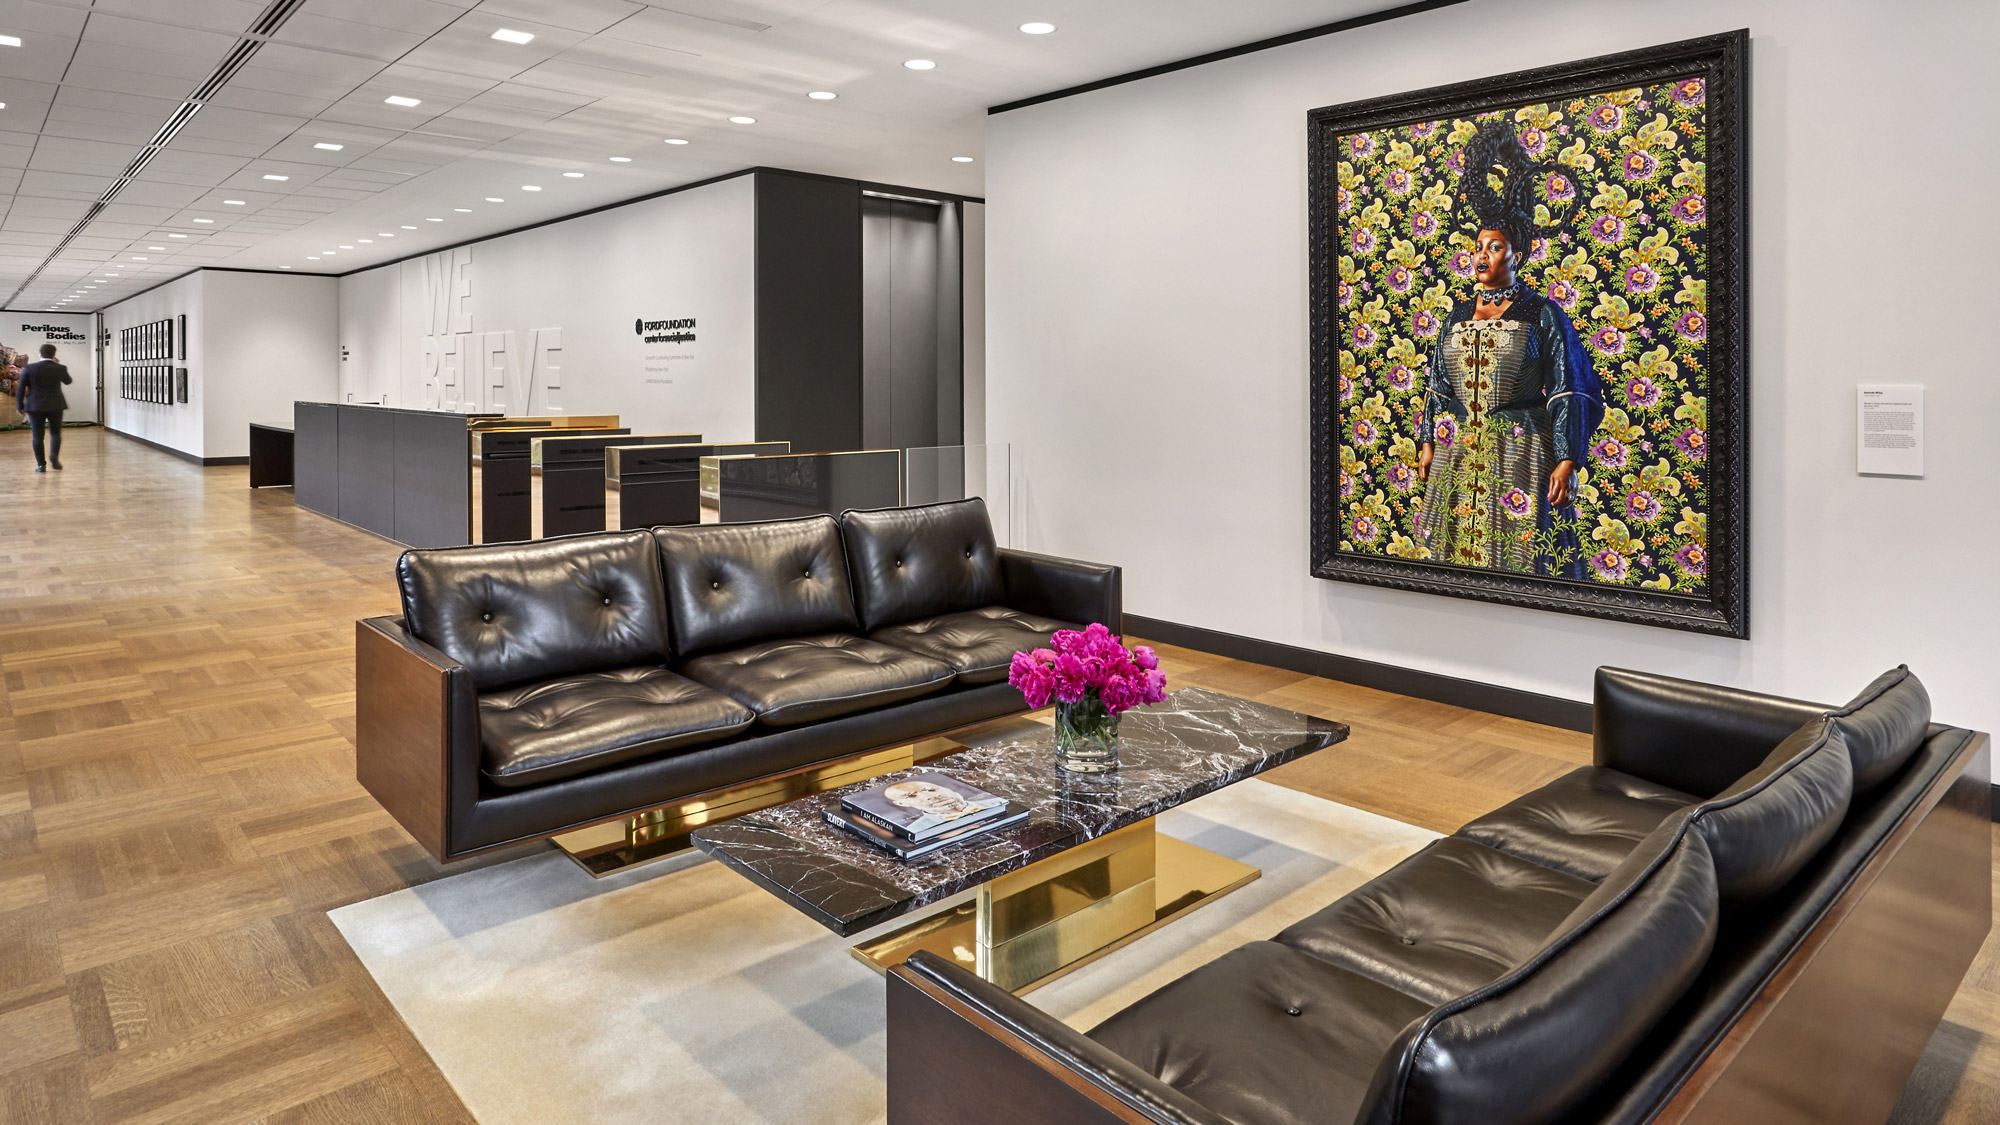 A vibrant painting by Kehinde Wiley overlooks the reception area of the Ford Foundation for Social Justice.